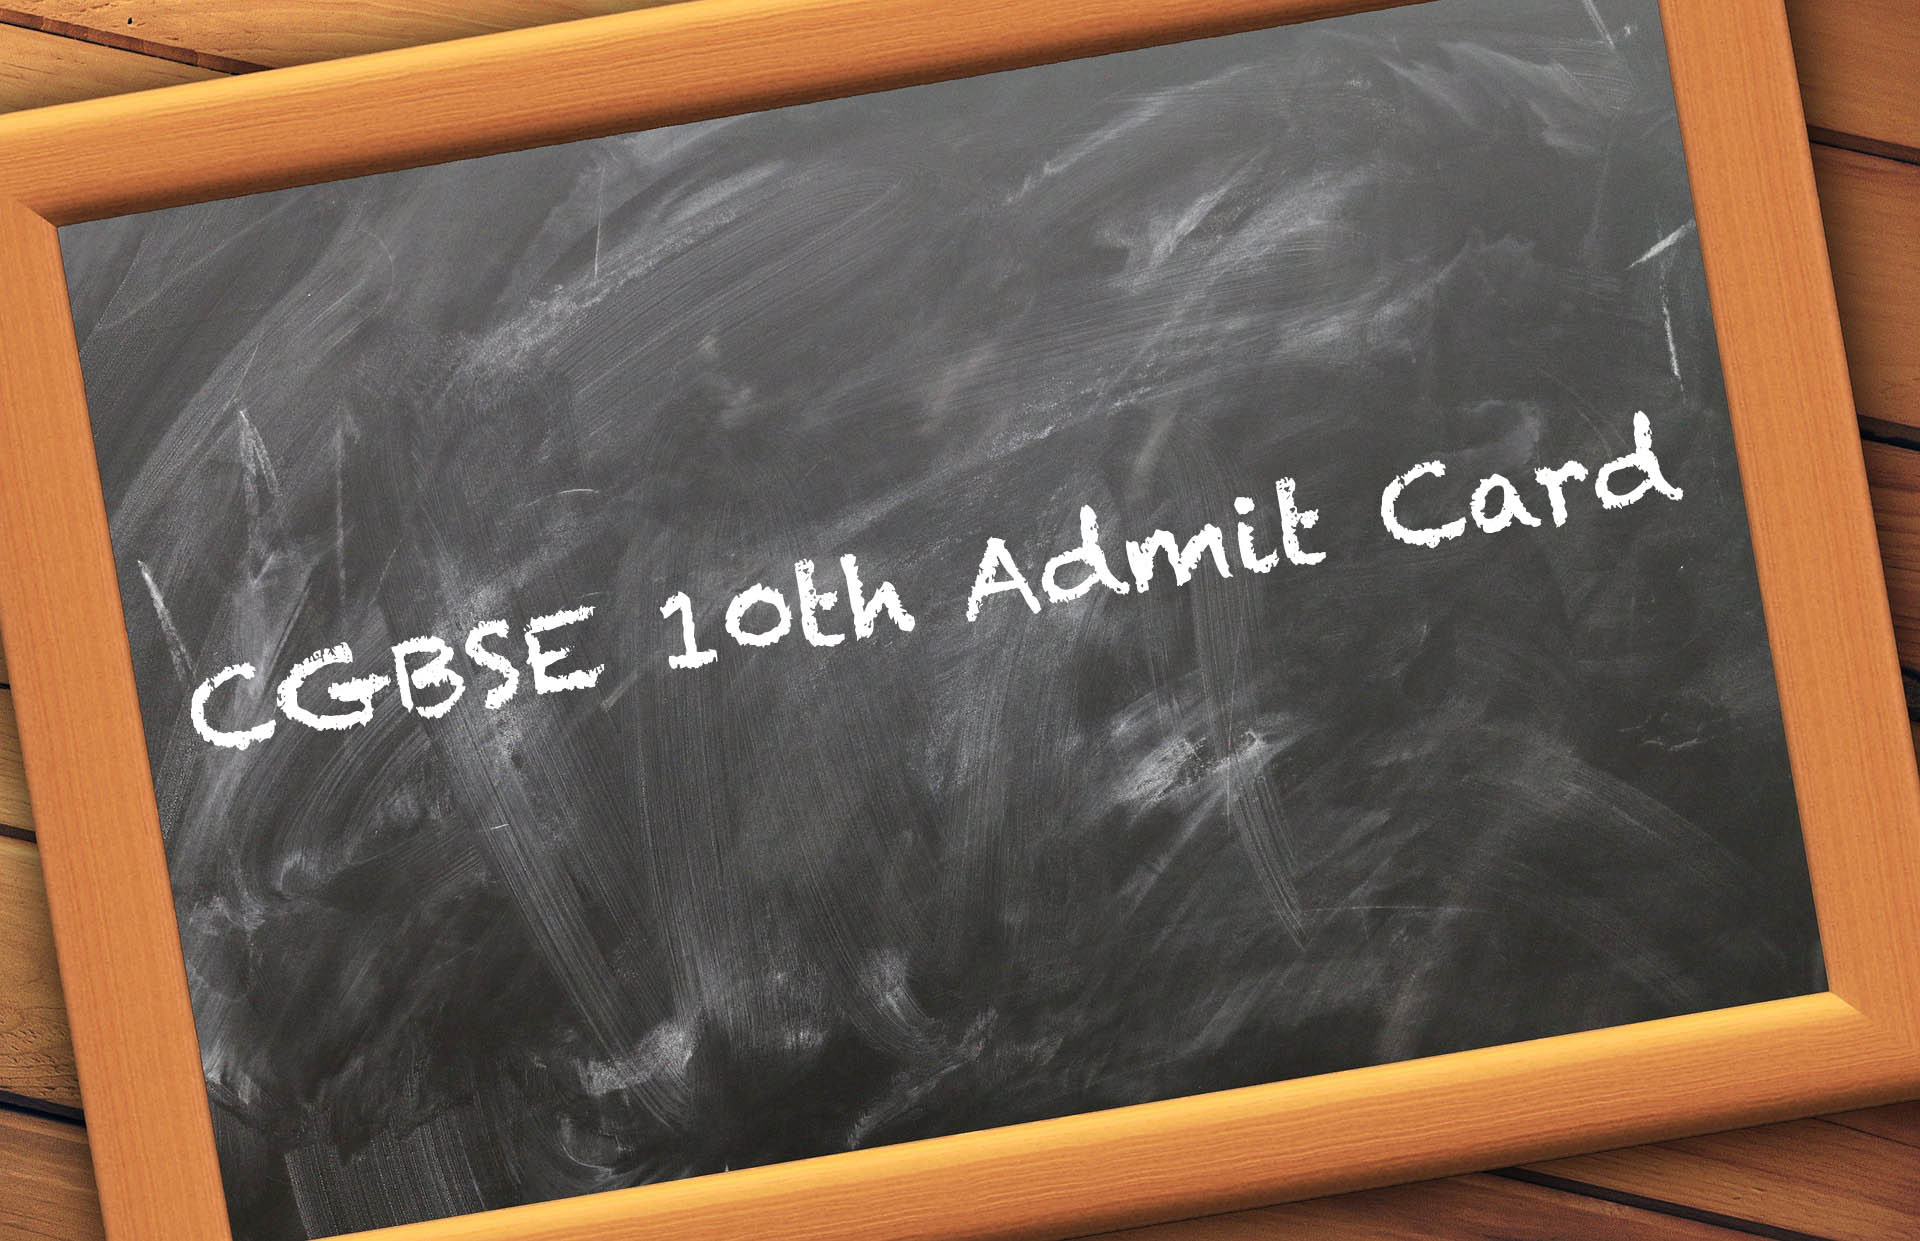 CGBSE 10th Admit Card 2020 : Download CG Board 10th Class Admit Card 2020